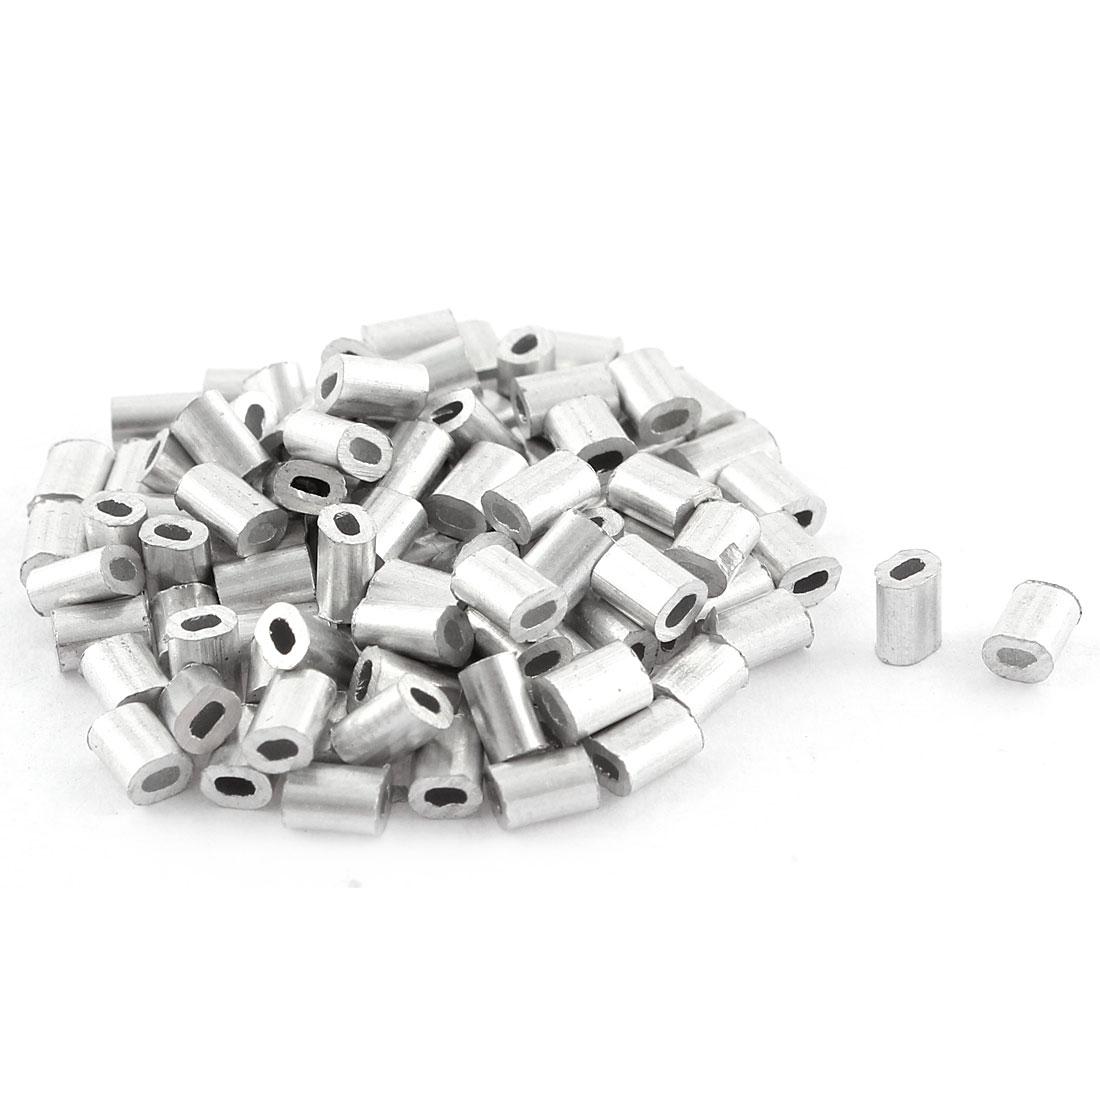 100pcs Oval Aluminum Sleeves Clamps for 0.5mm Wire Rope Swage Clip